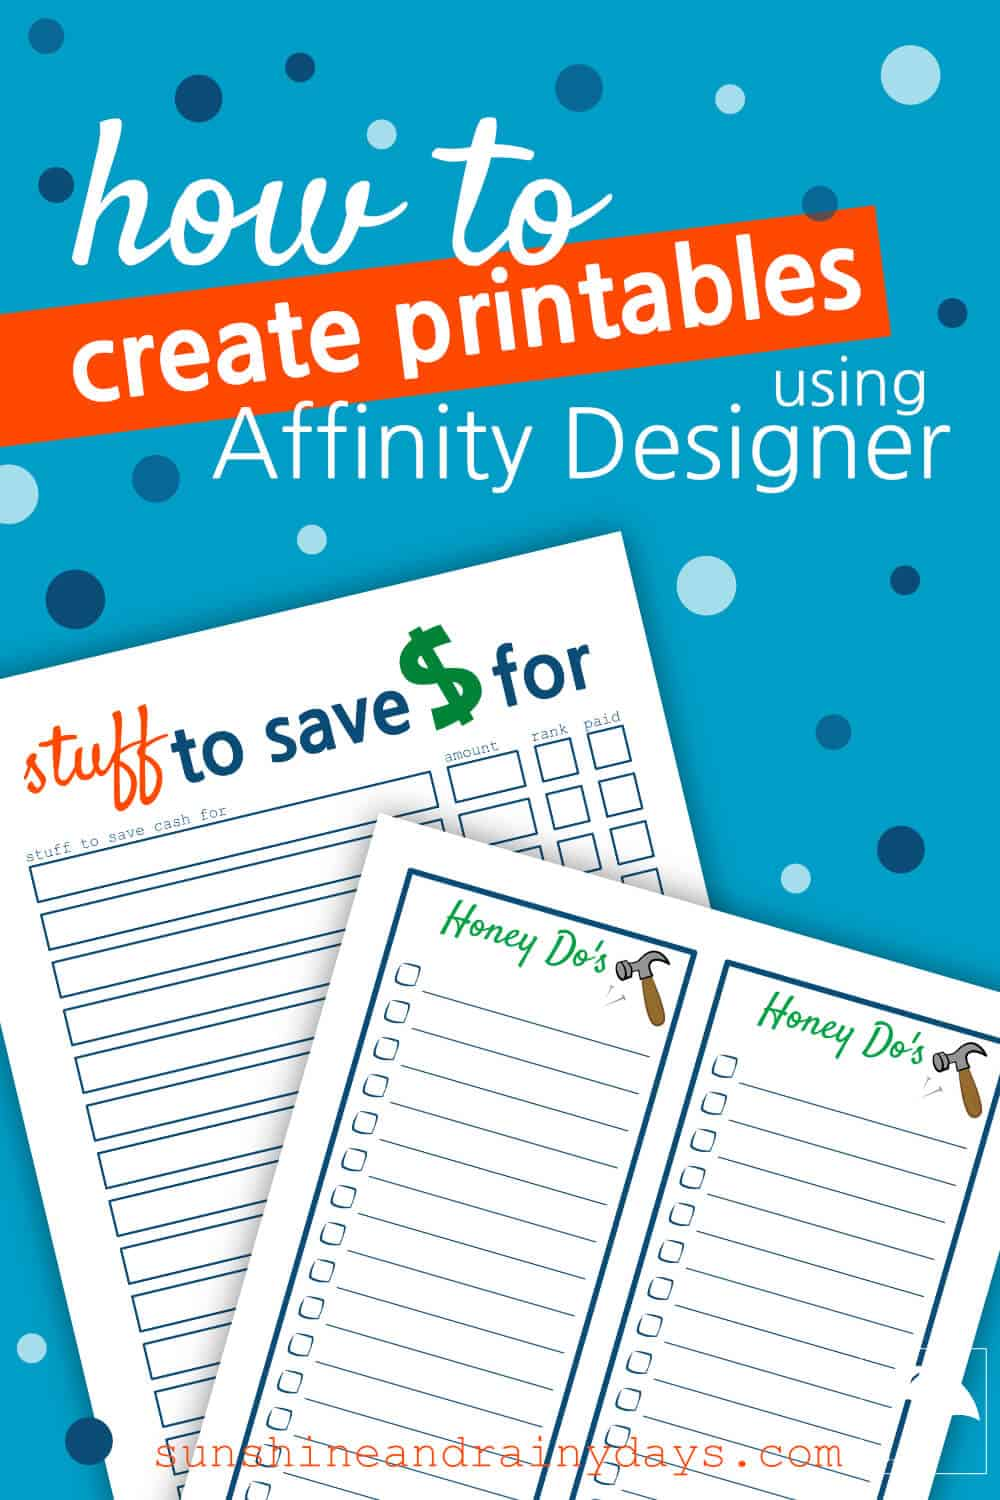 Printables with words: How To Create Printables Using Affinity Designer